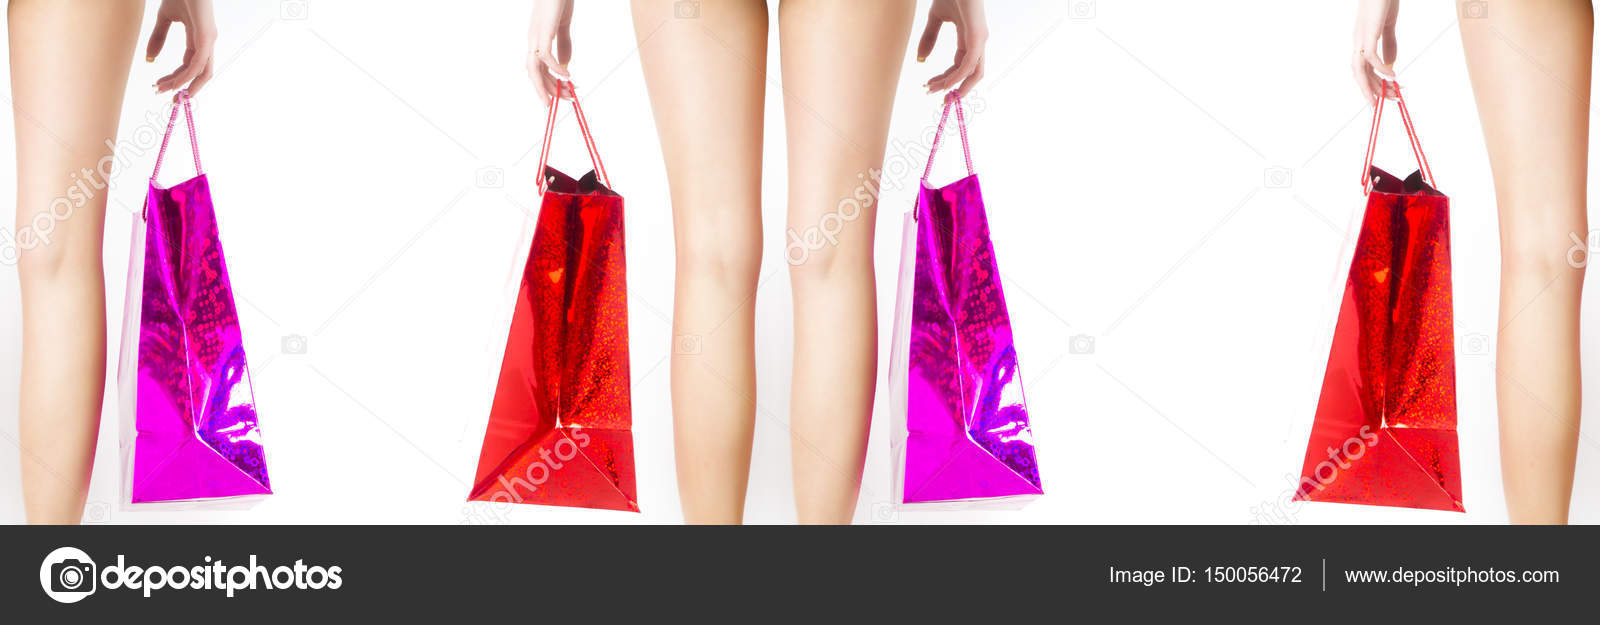 Sexy female legs back view shopping for christmas easter sexy female legs back view shopping for christmas easter valentines day new year birthday woman gifts from the shop mall after shopping negle Choice Image